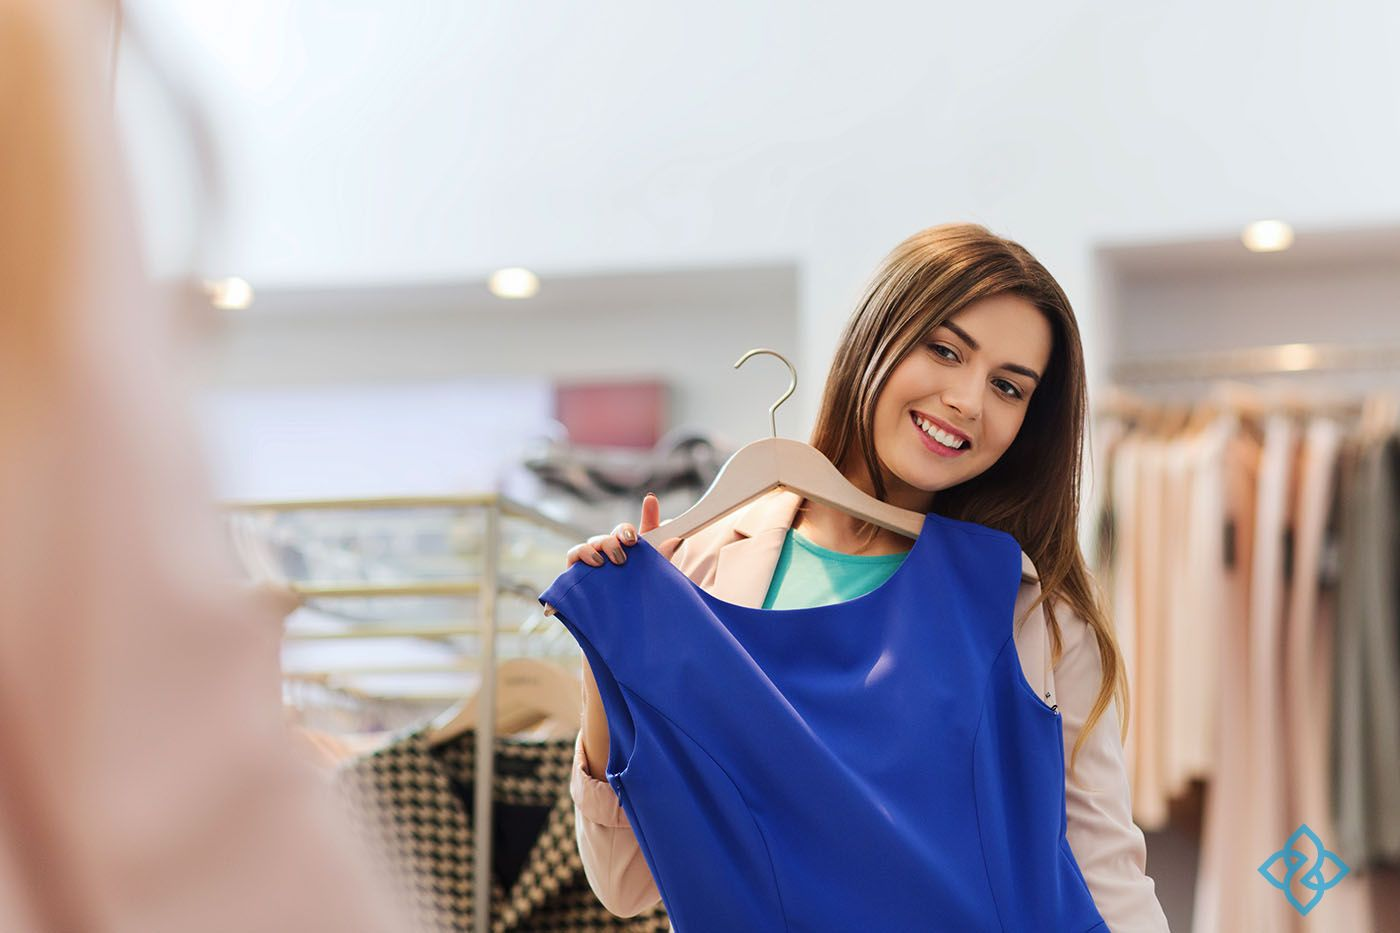 5 Reasons Why Scent Marketing Will Boost Your Retail Sales